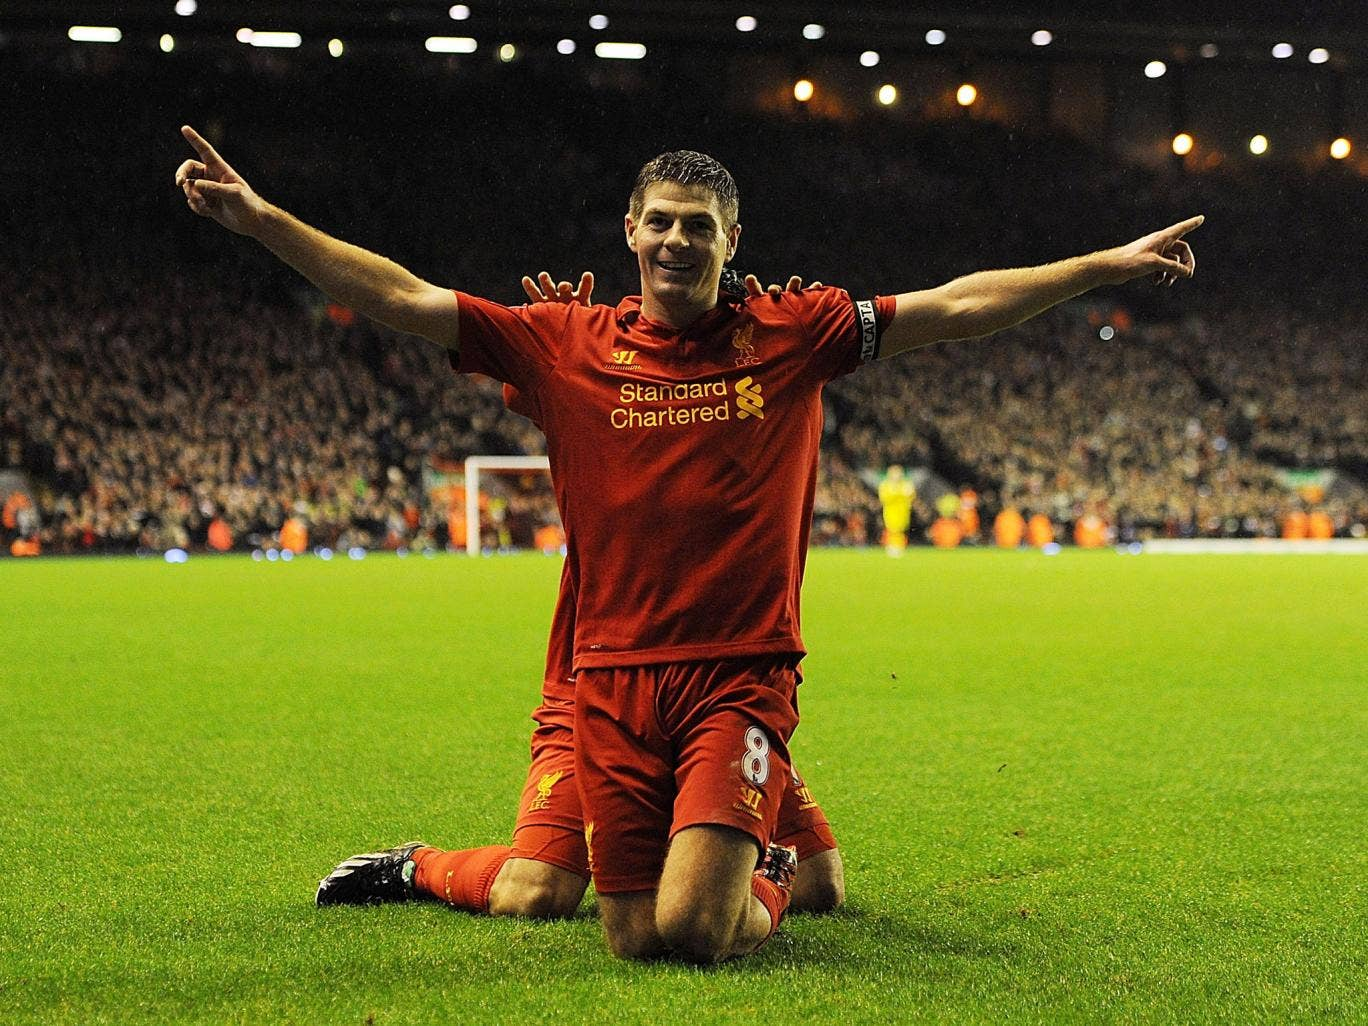 Steven Gerrard (L) of Liverpool celebrates with his team-mate Luis Suarez